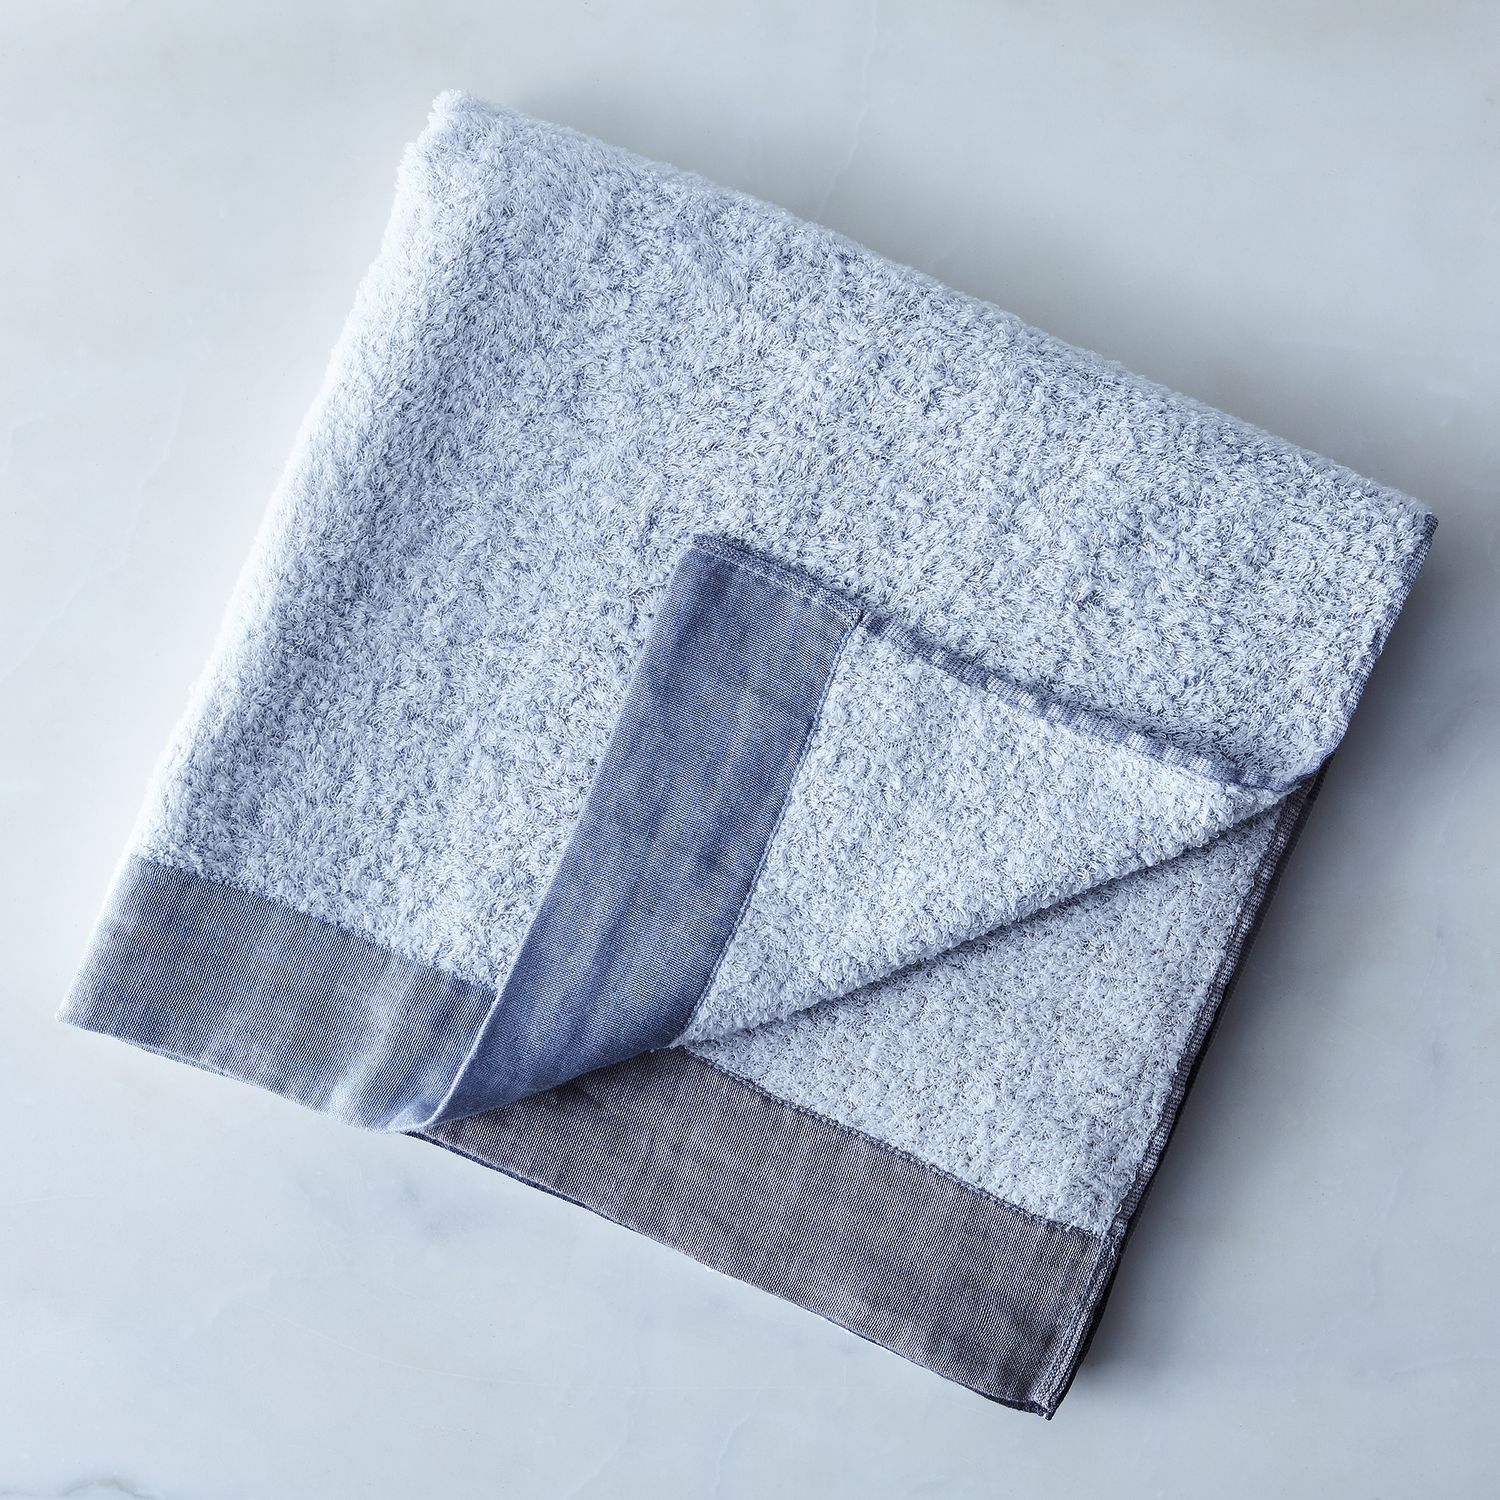 Soft Linen Amp Cotton Colorblock Towels On Food52